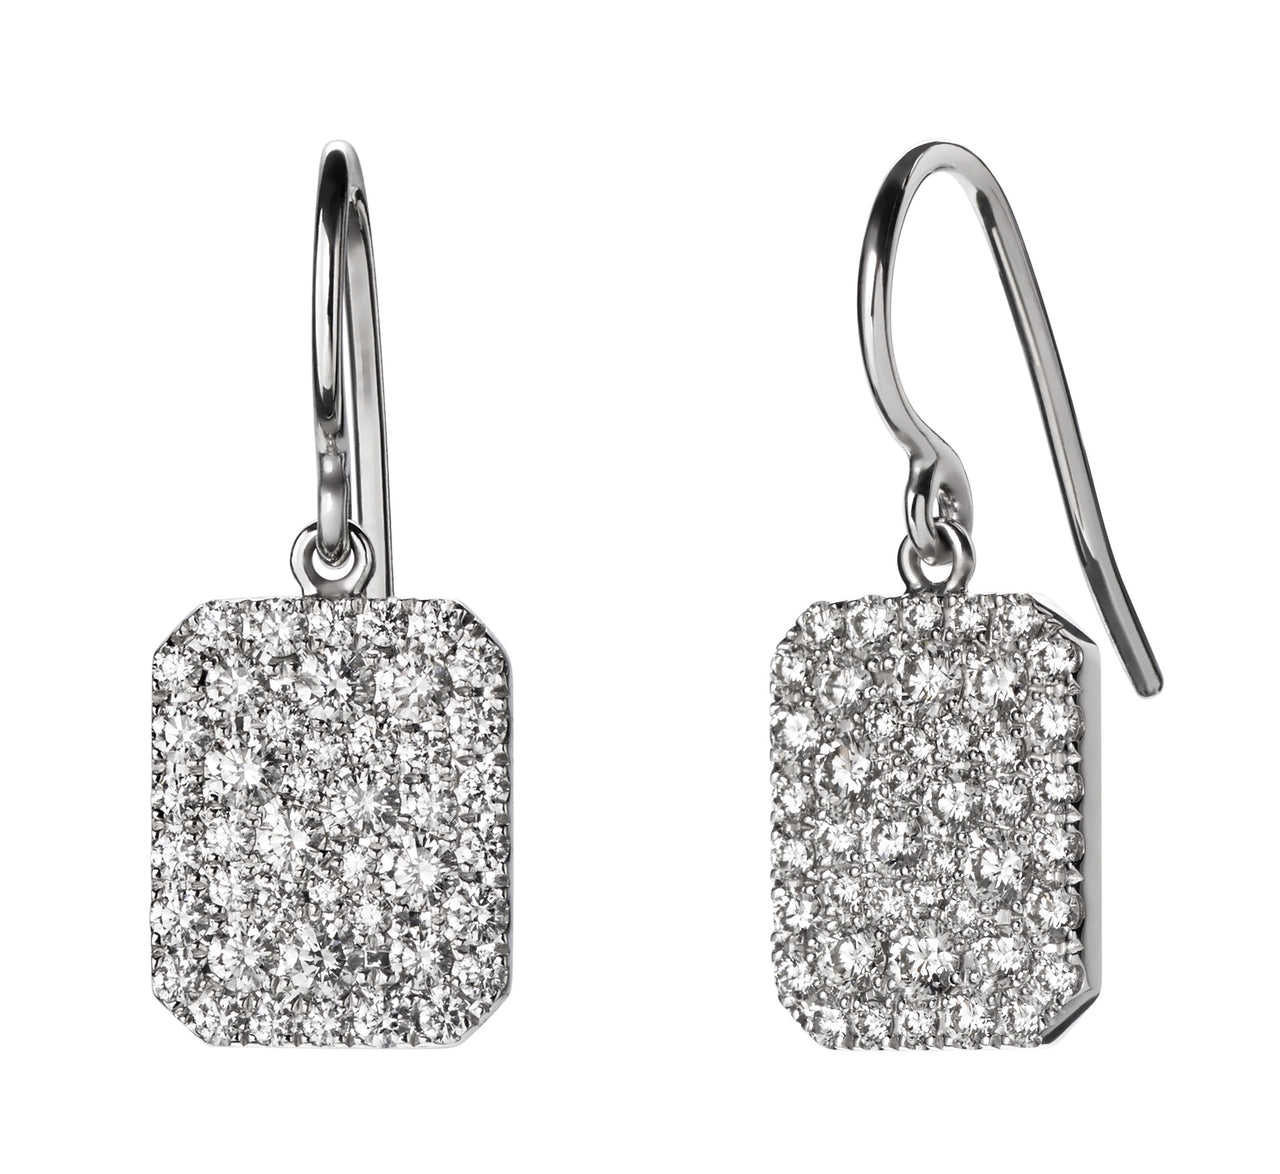 lightweight sparkly mismatched pave diamond square scapular dangle earrings by finn by candice pool neistat